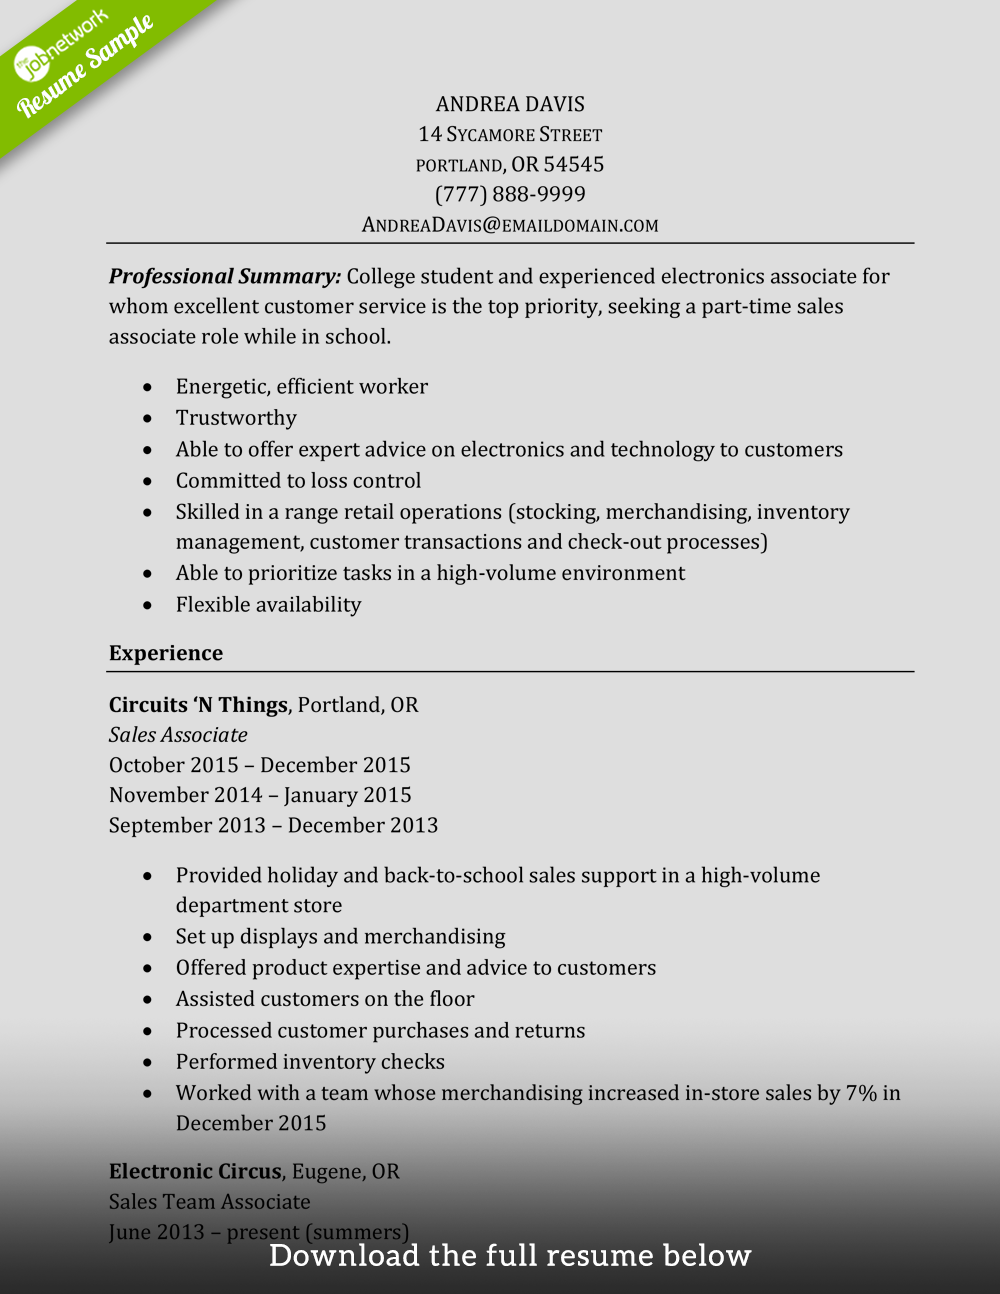 Sales Associate Resume Experienced  Resume Examples 2013